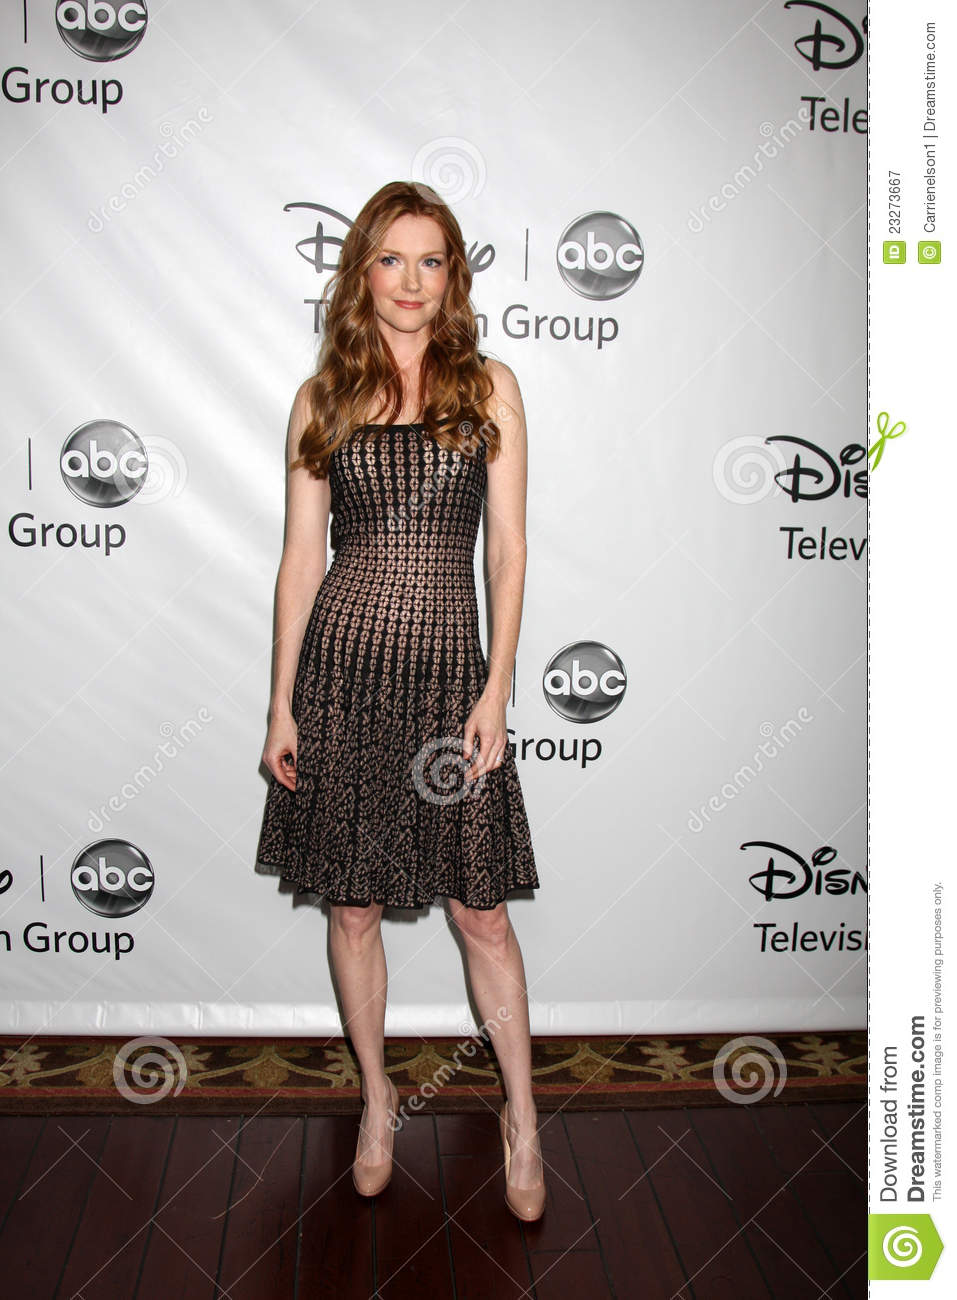 957x1300 - Darby Stanchfield Wallpapers 2